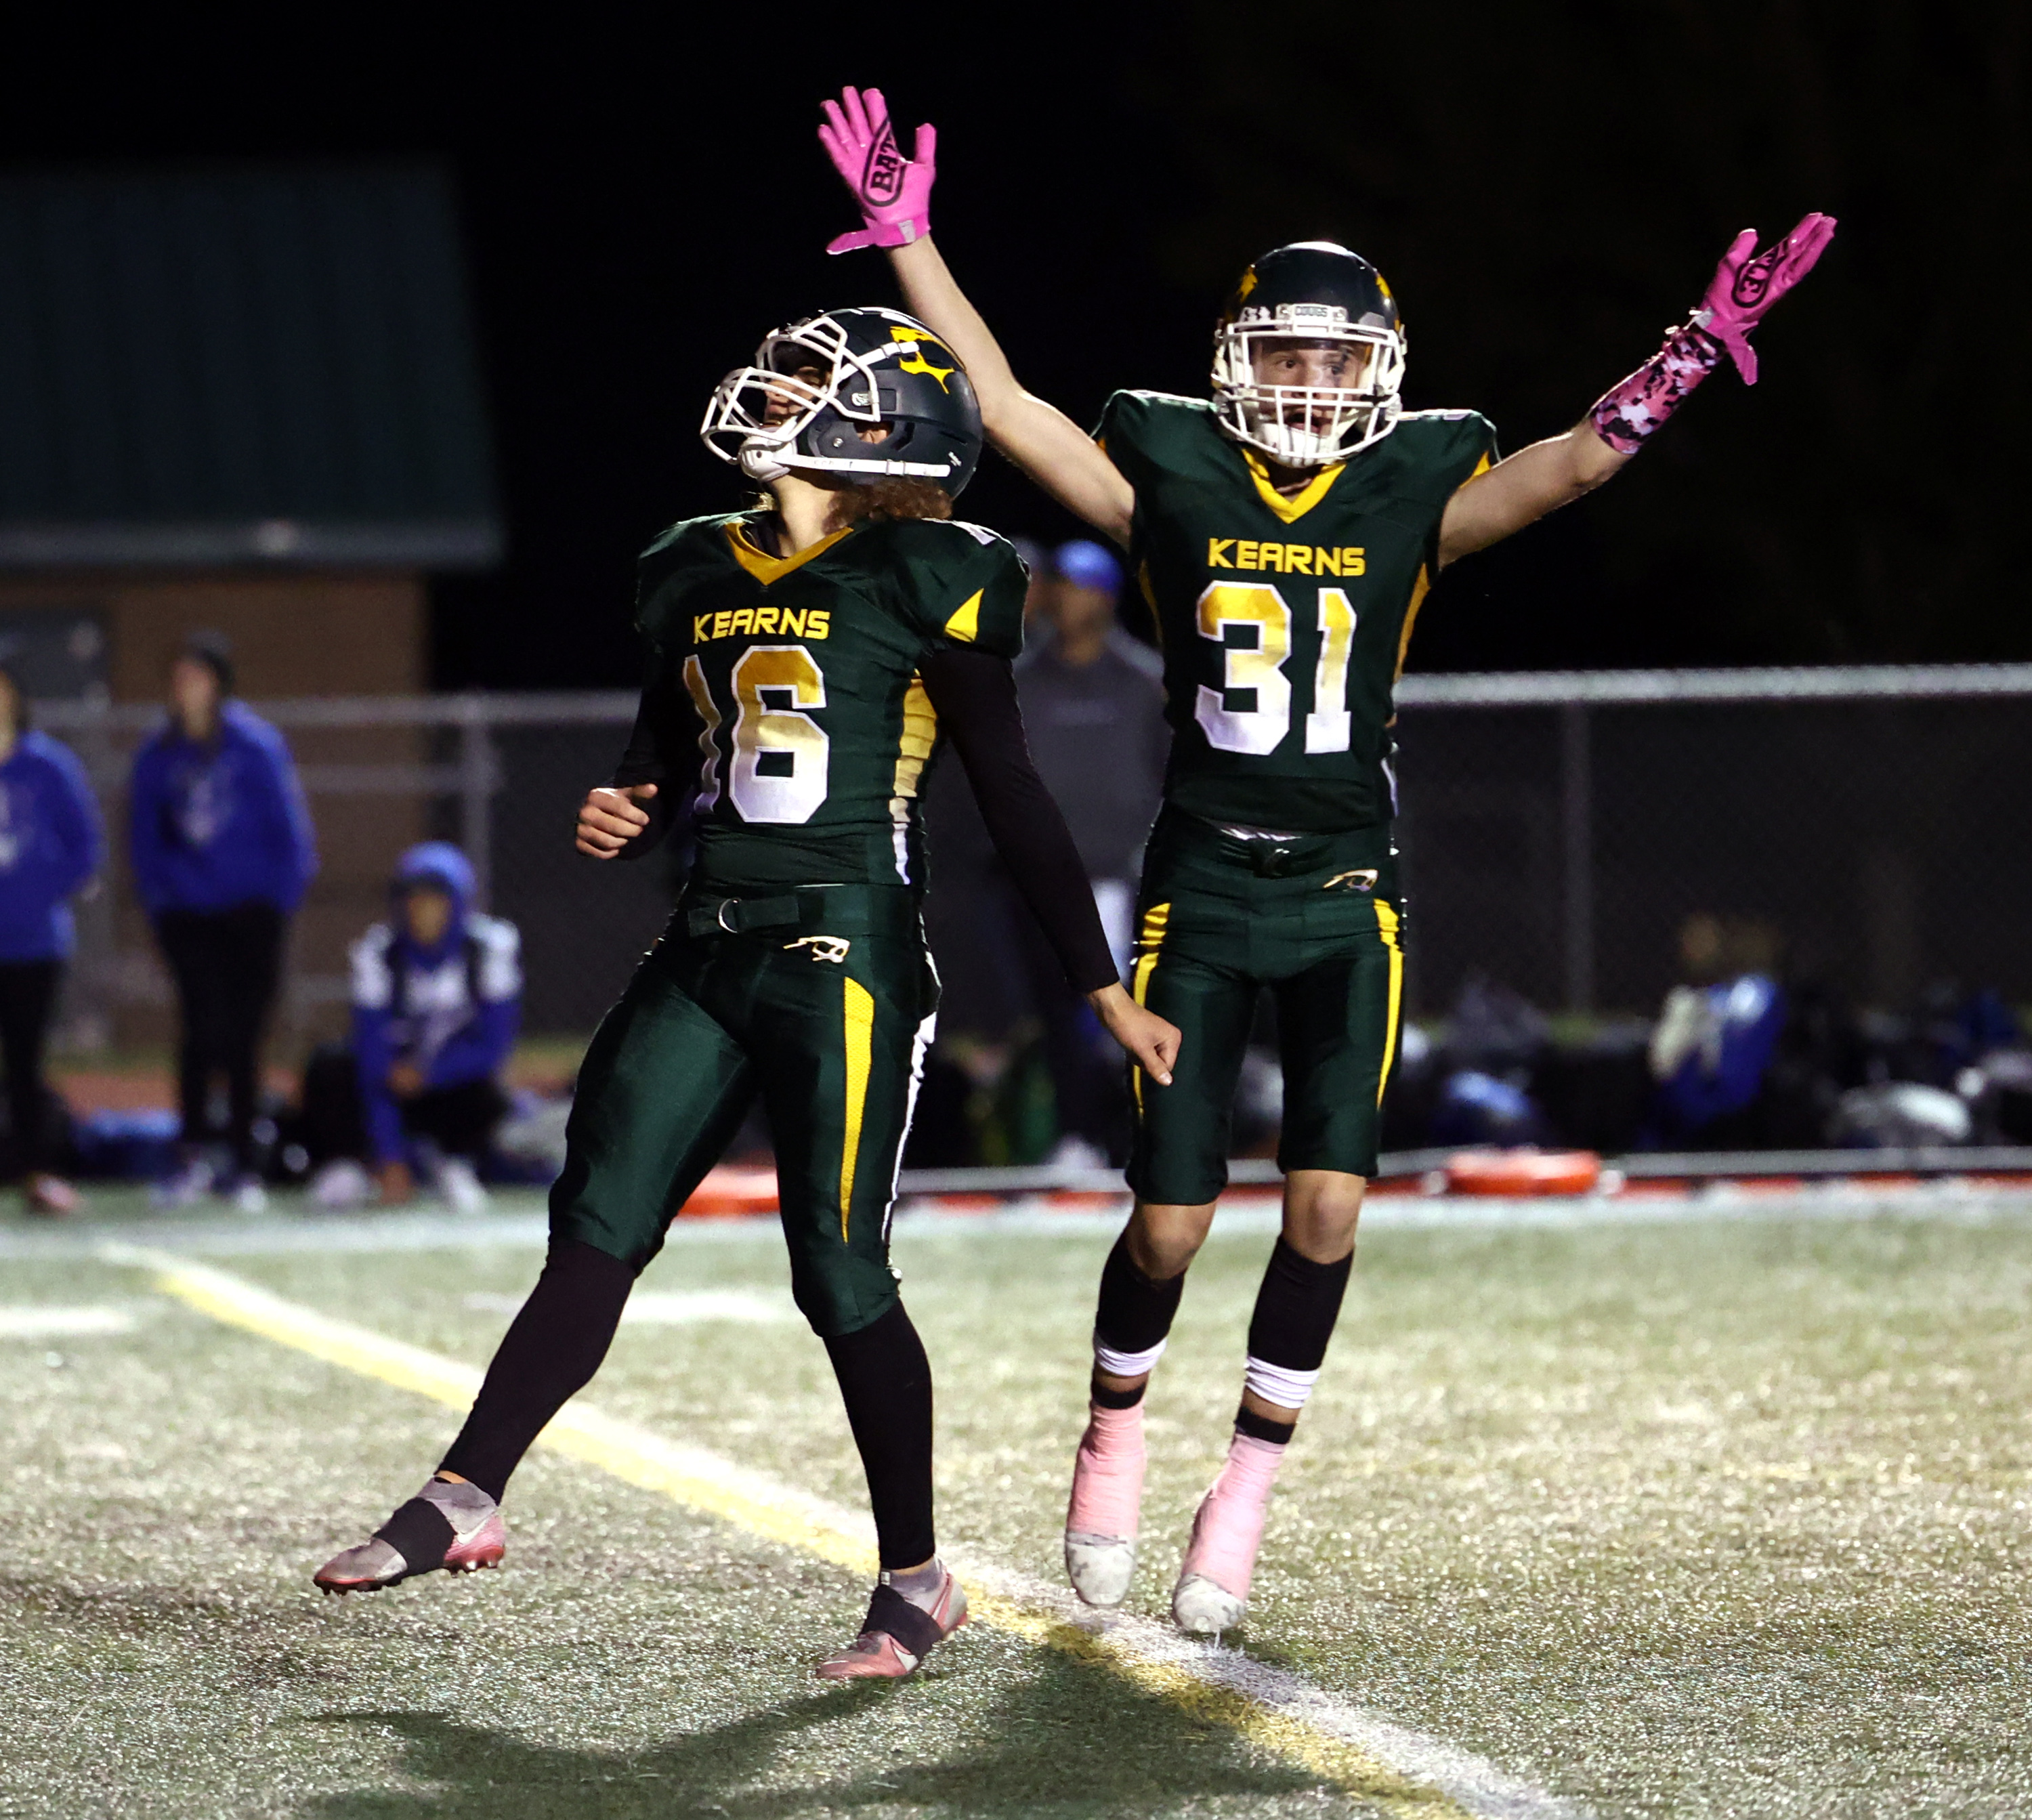 Kearns' kicker Benyon Glade watches as his kick sails through the uprights for the overtime win over Fremont as teammate Daniel Philip begins to celebrate.